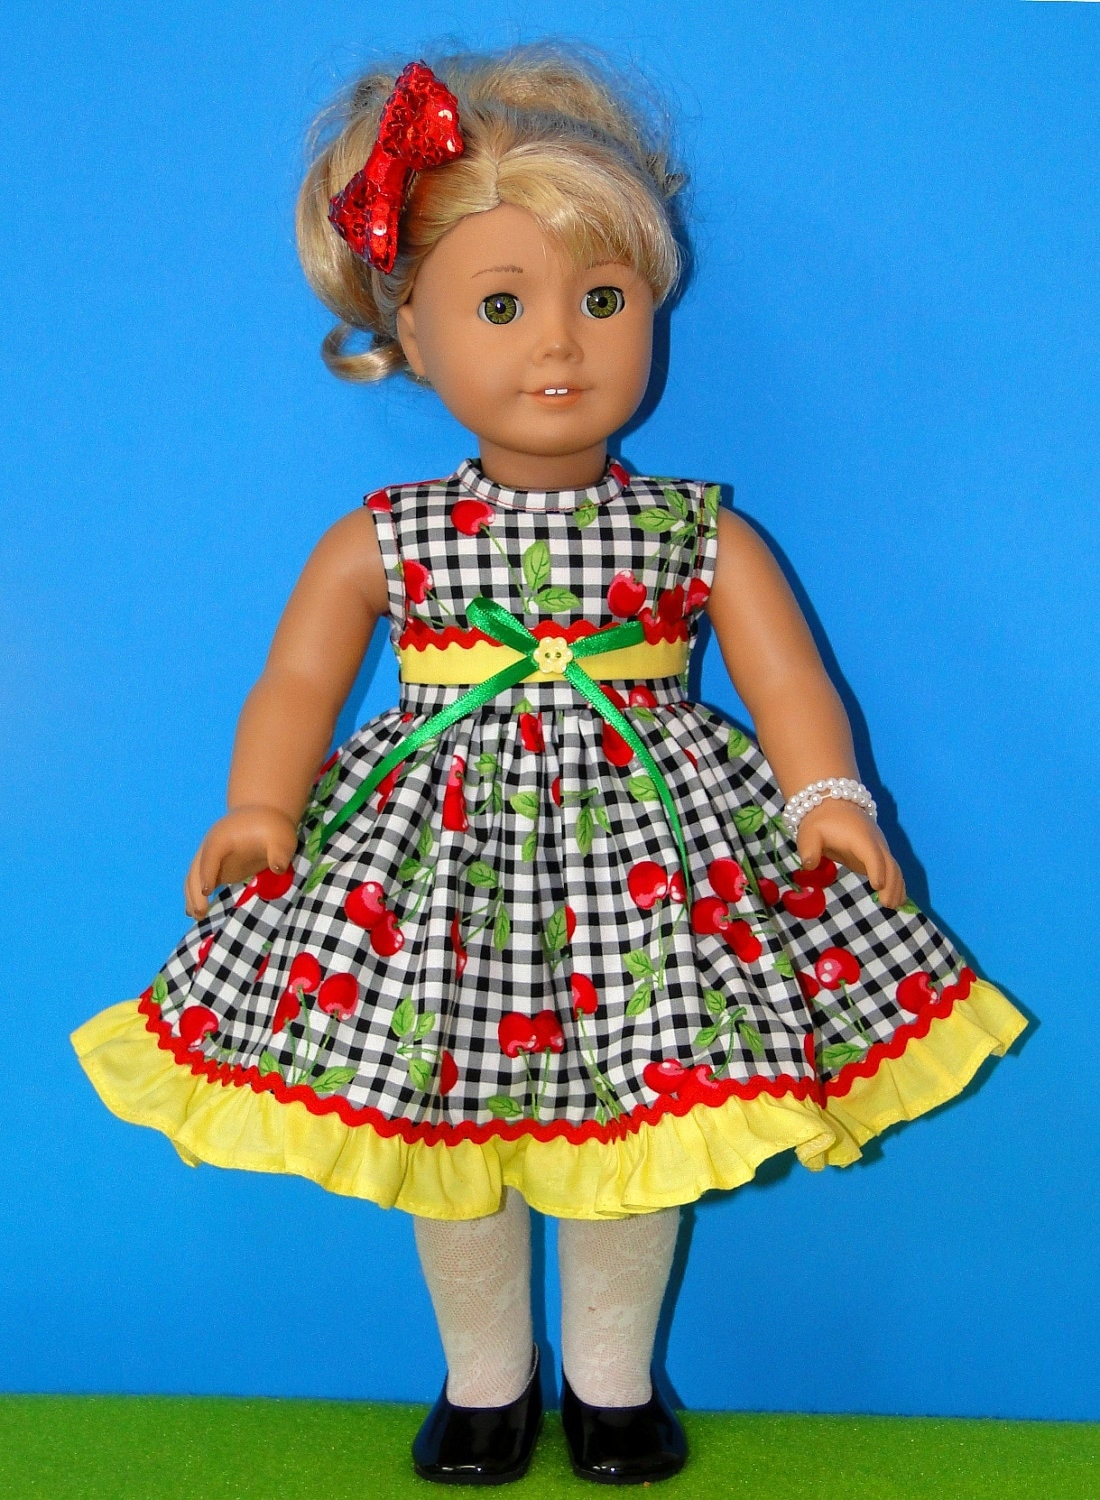 Cute American Girl Doll Pictures to Print